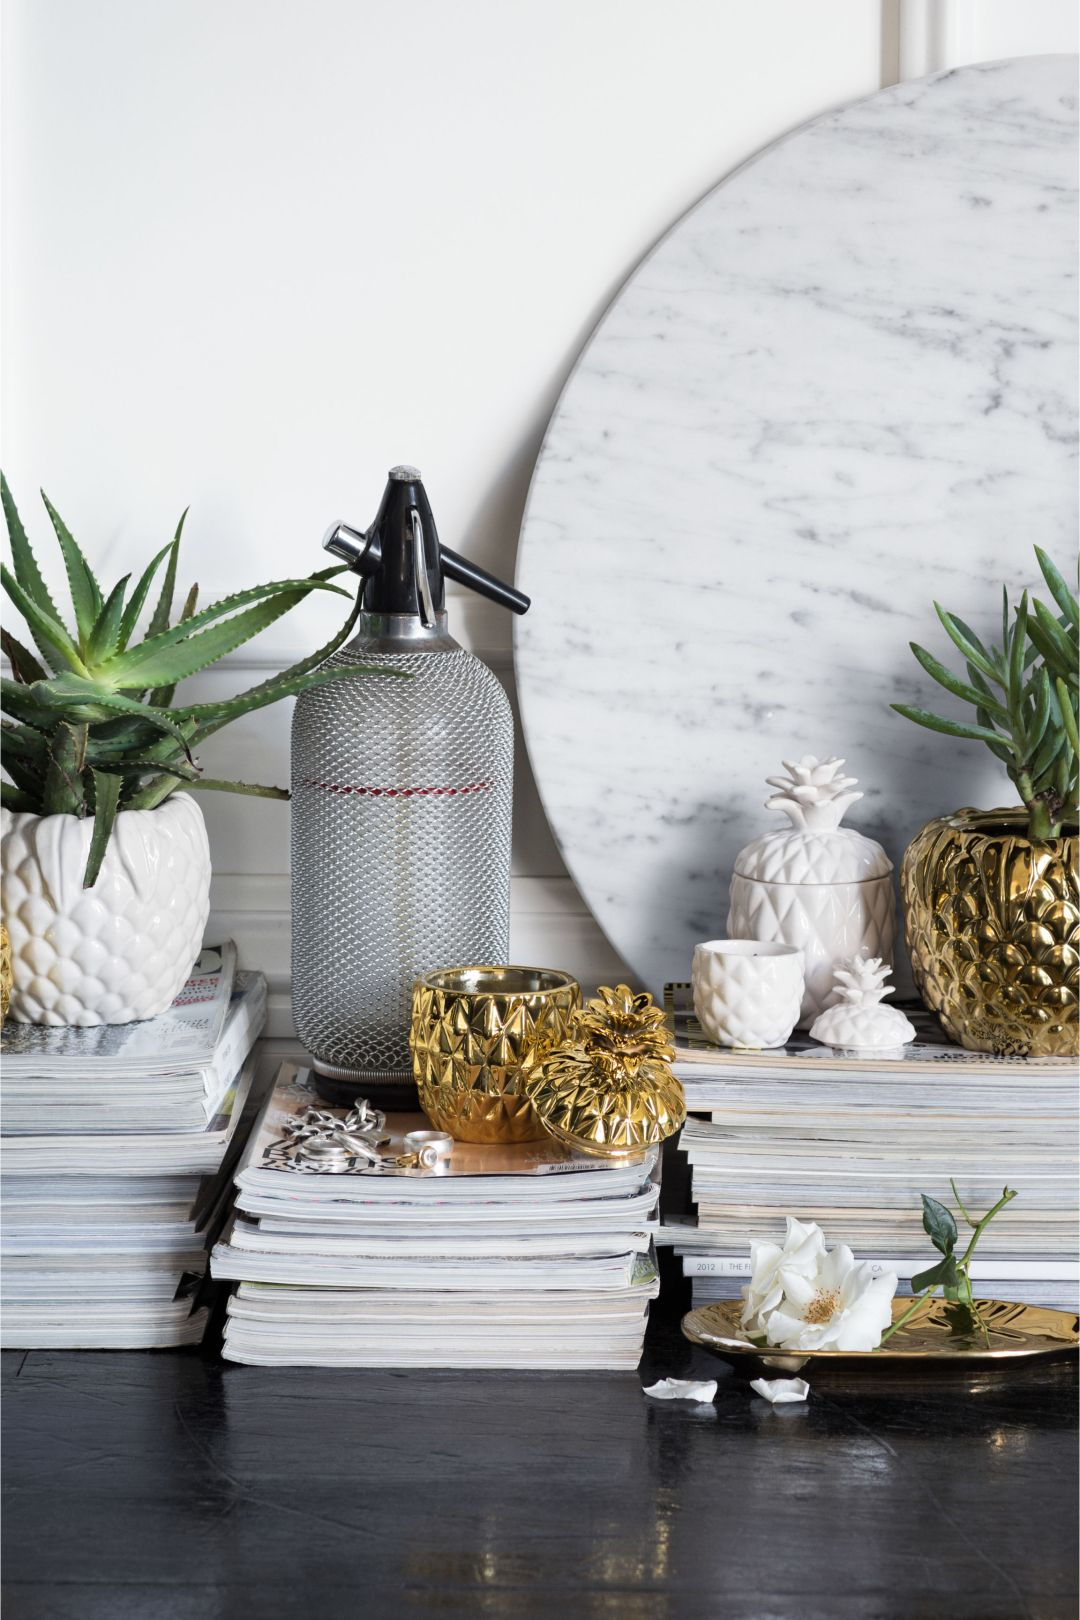 Pineapple ceramic holder by H&M Home - Accessories for your urban jungle - Transform your home into a tropical paradise | Aliz's Wonderland